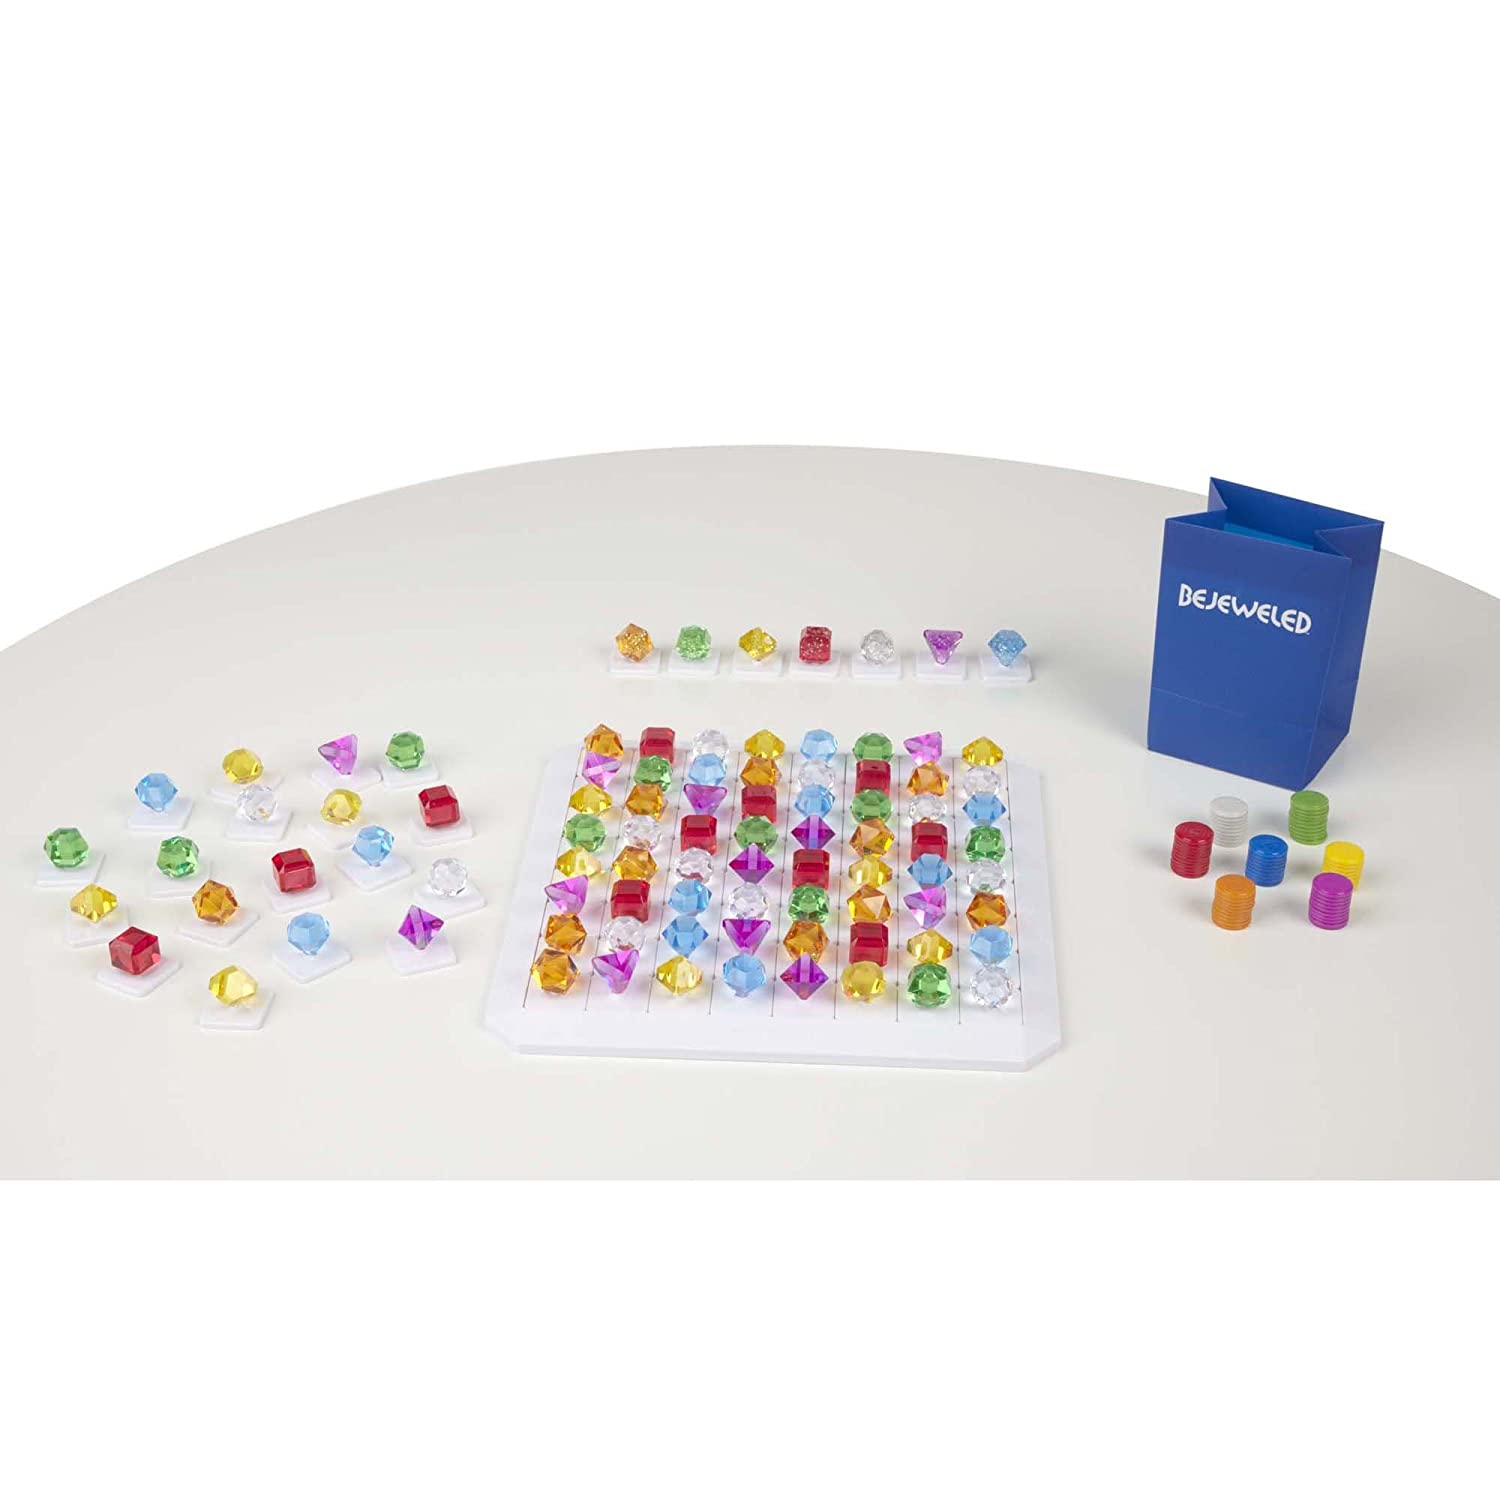 Bejeweled Game Hasbro A2541